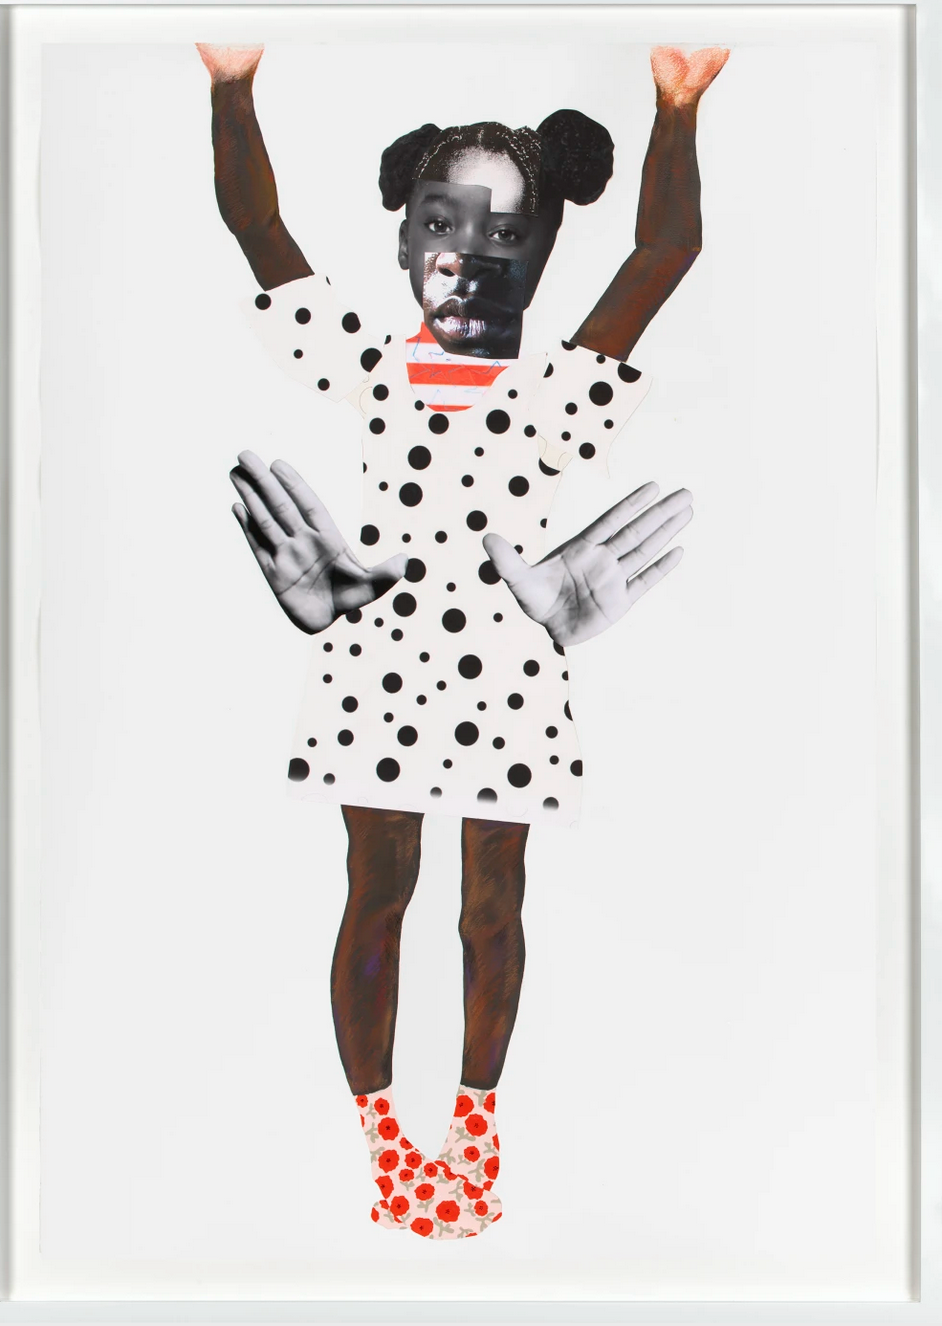 Collage of young Black girl in polka dot dress and shoes.